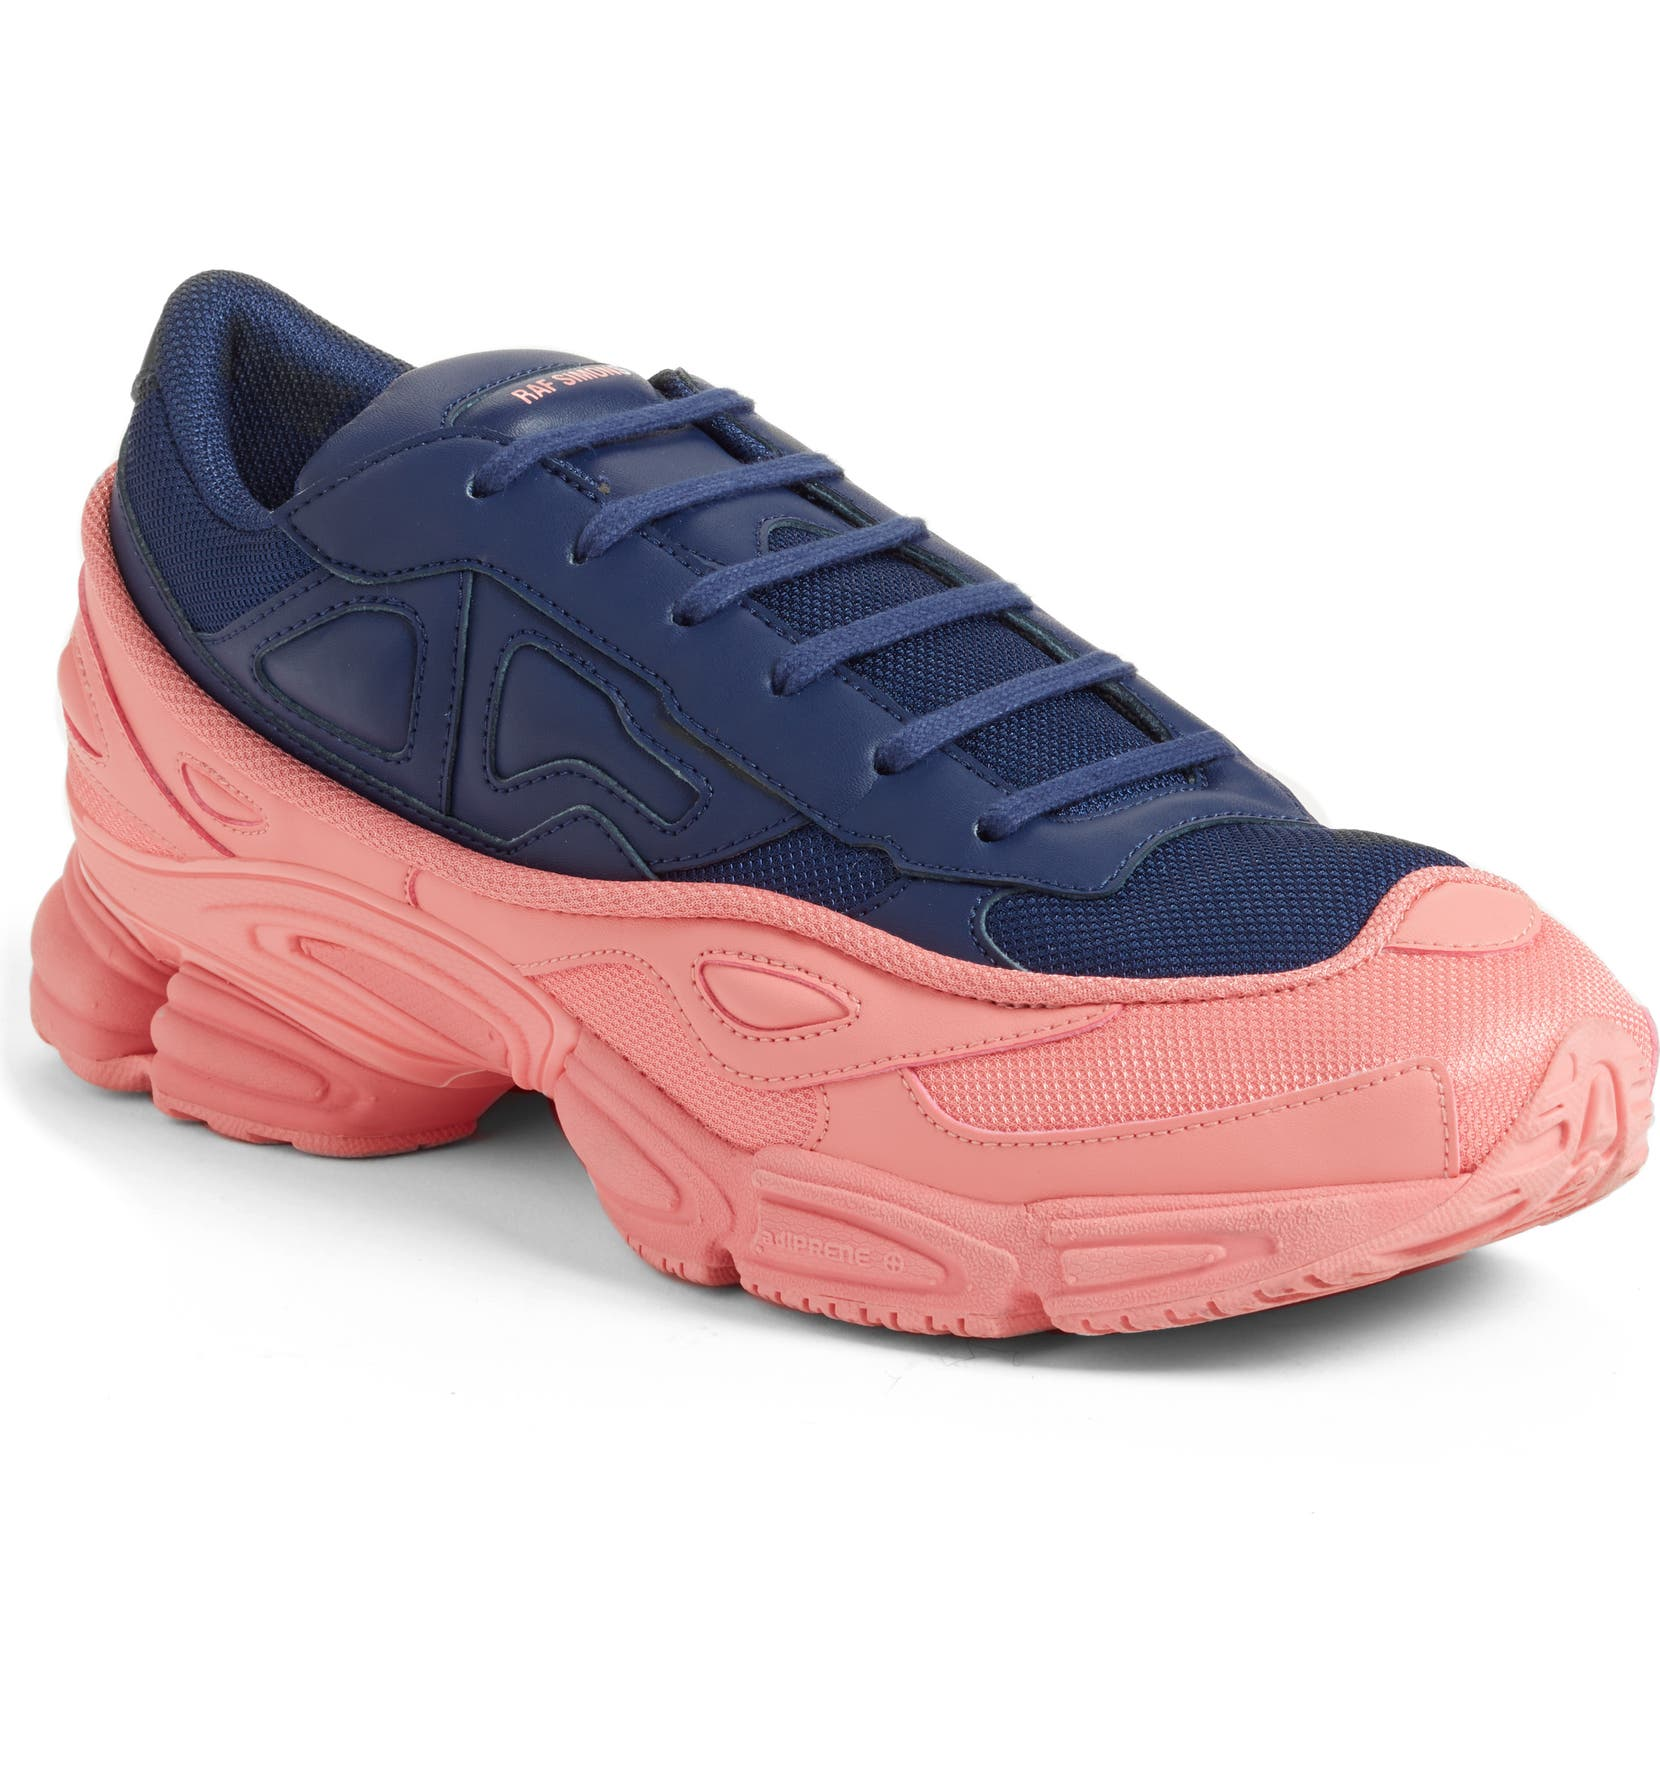 finest selection d899f 56f77 adidas by Raf Simons Ozweego III Sneaker (Men)  Nordstrom